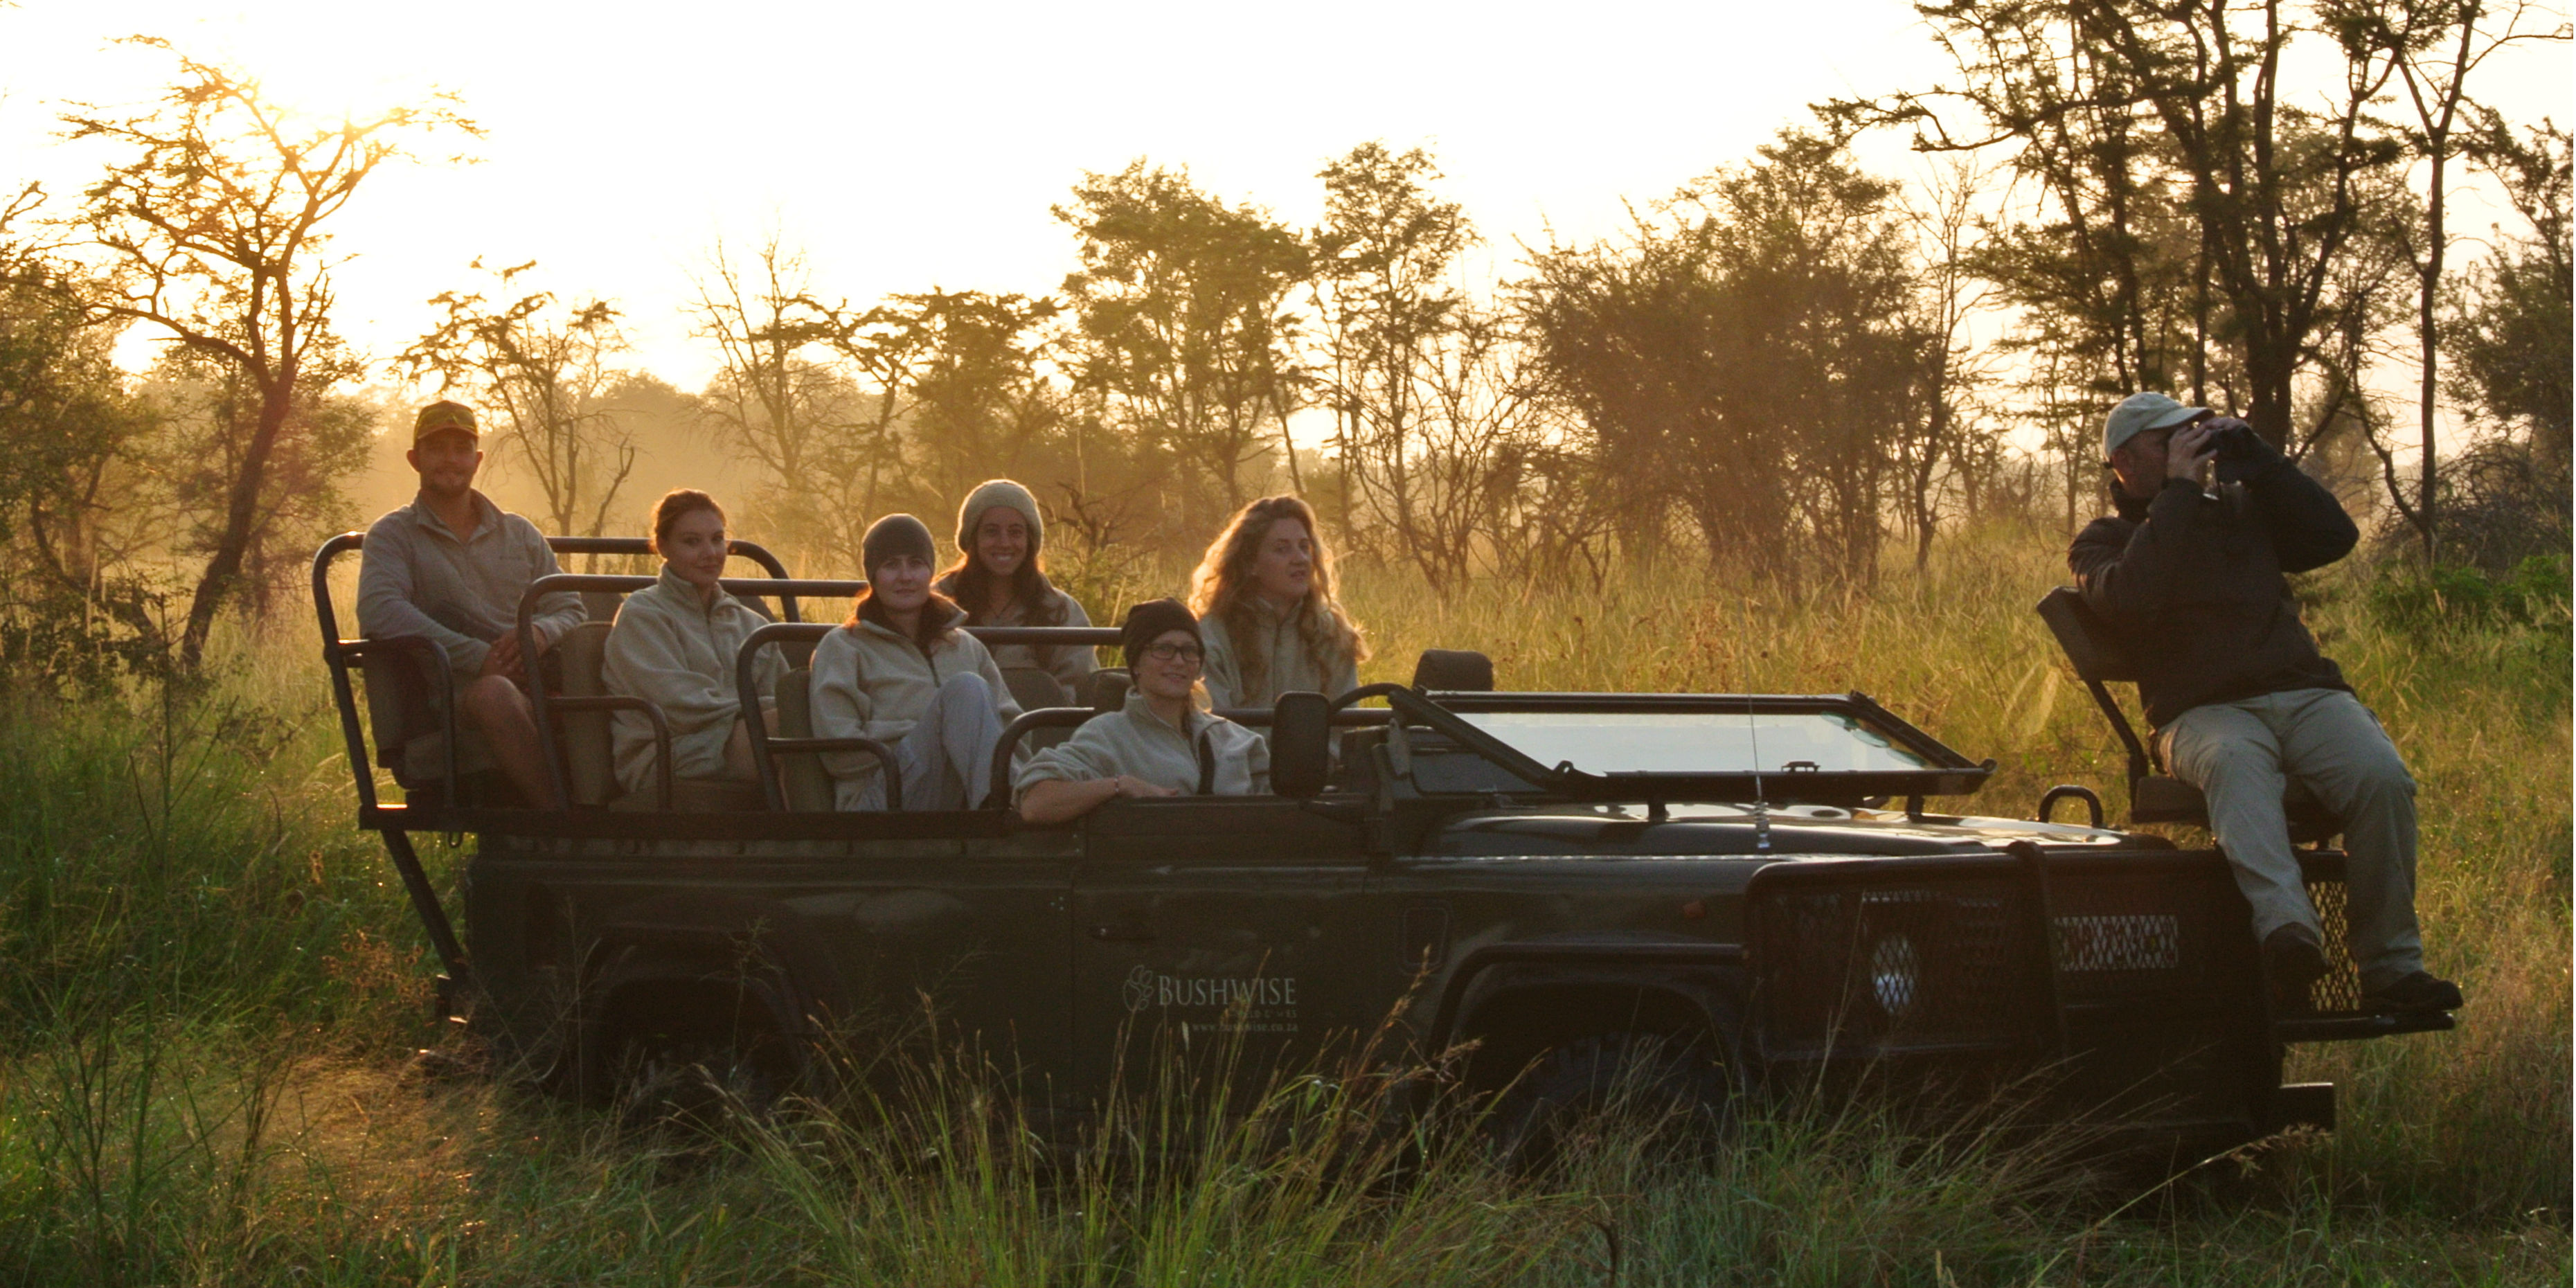 Participants enjoy a game drive while taking a gap year.